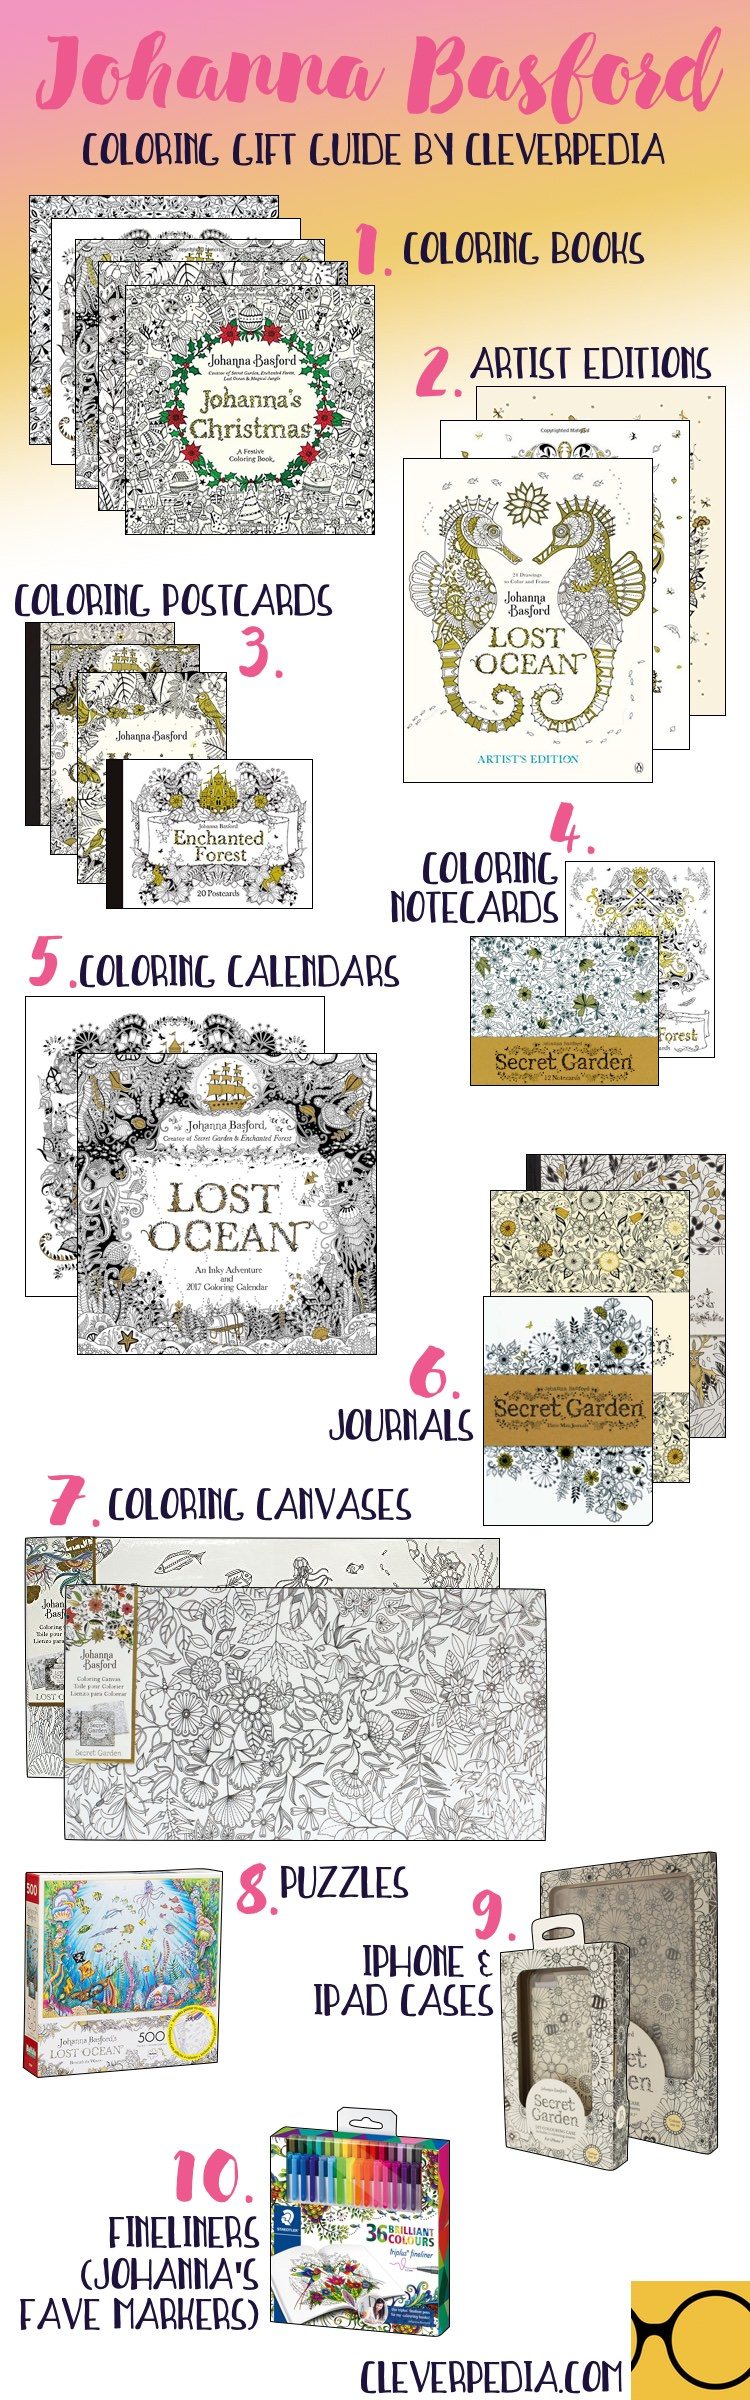 Johanna Basfords Many Coloring Books And Other Products Make Great Gifts For New Experienced